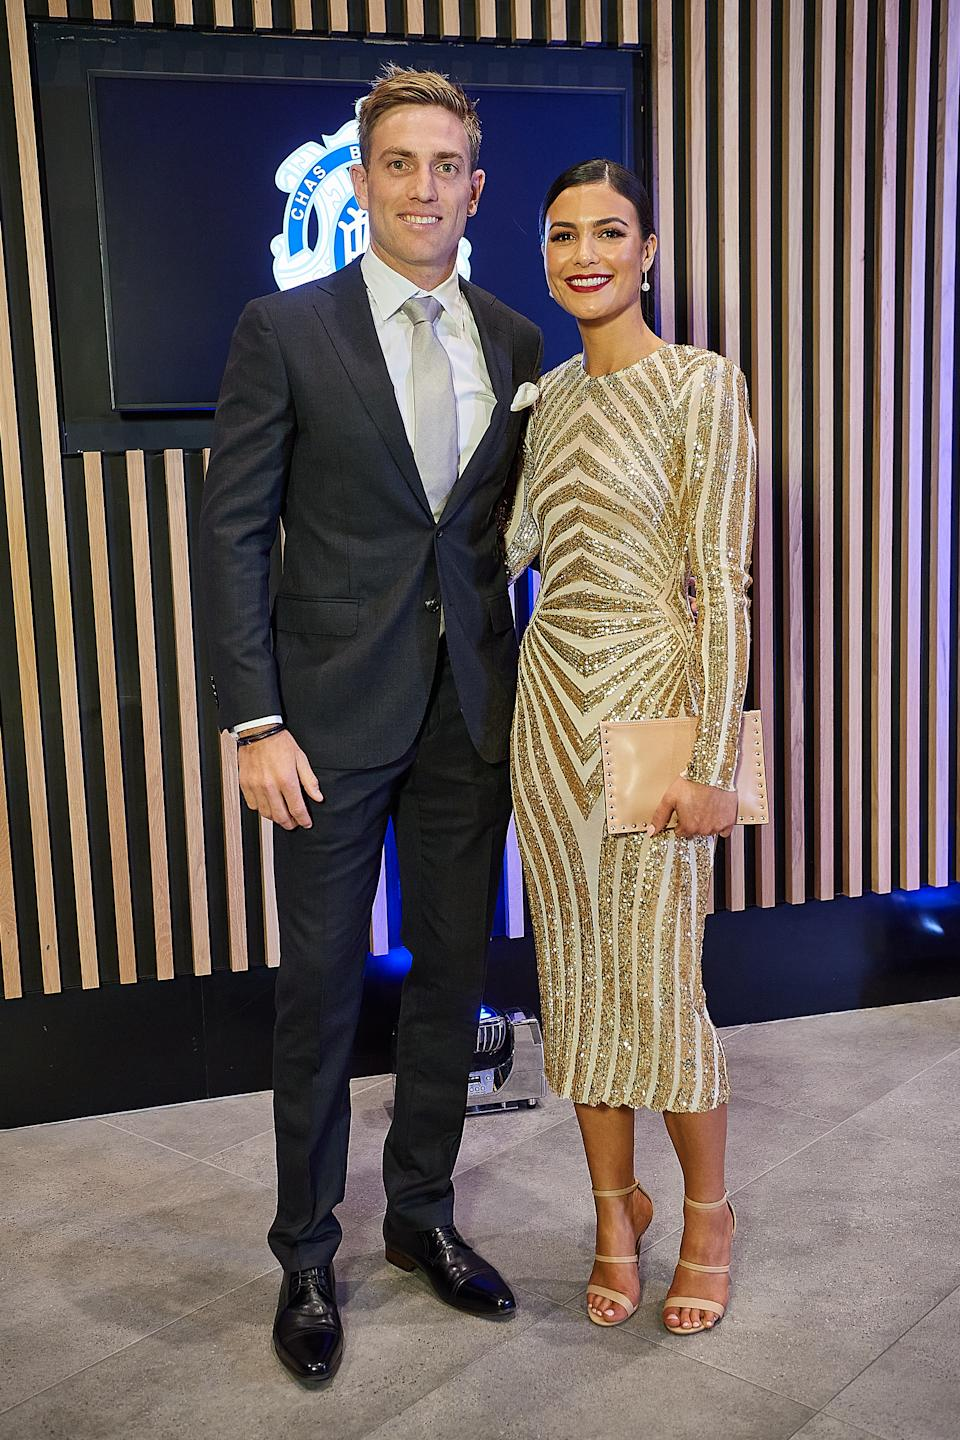 Brad Sheppard and partner Ellen Taylor-Hawkins pose for a photo during the 2020 Brownlow Medal Count at Optus Stadium on October 18, 2020 in Perth, Australia.